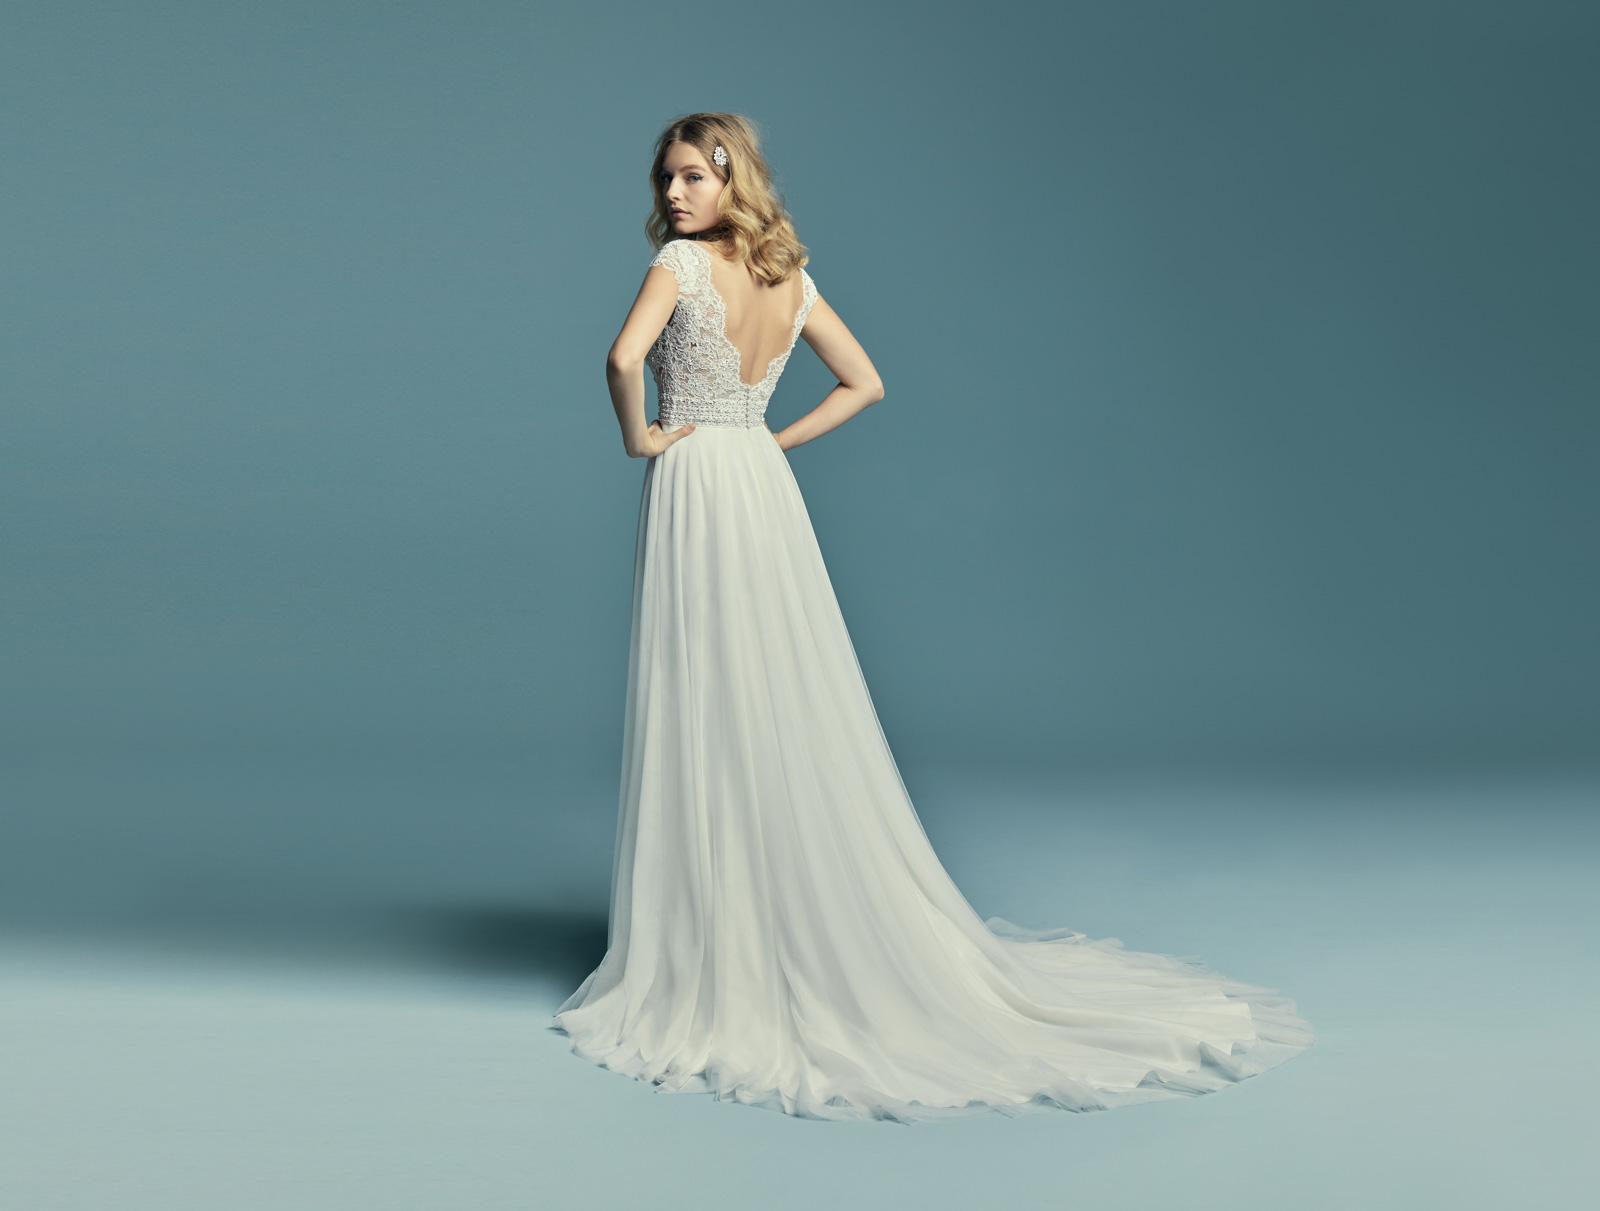 Maggie-Sottero-Monarch-8MS751-Back_72DPI